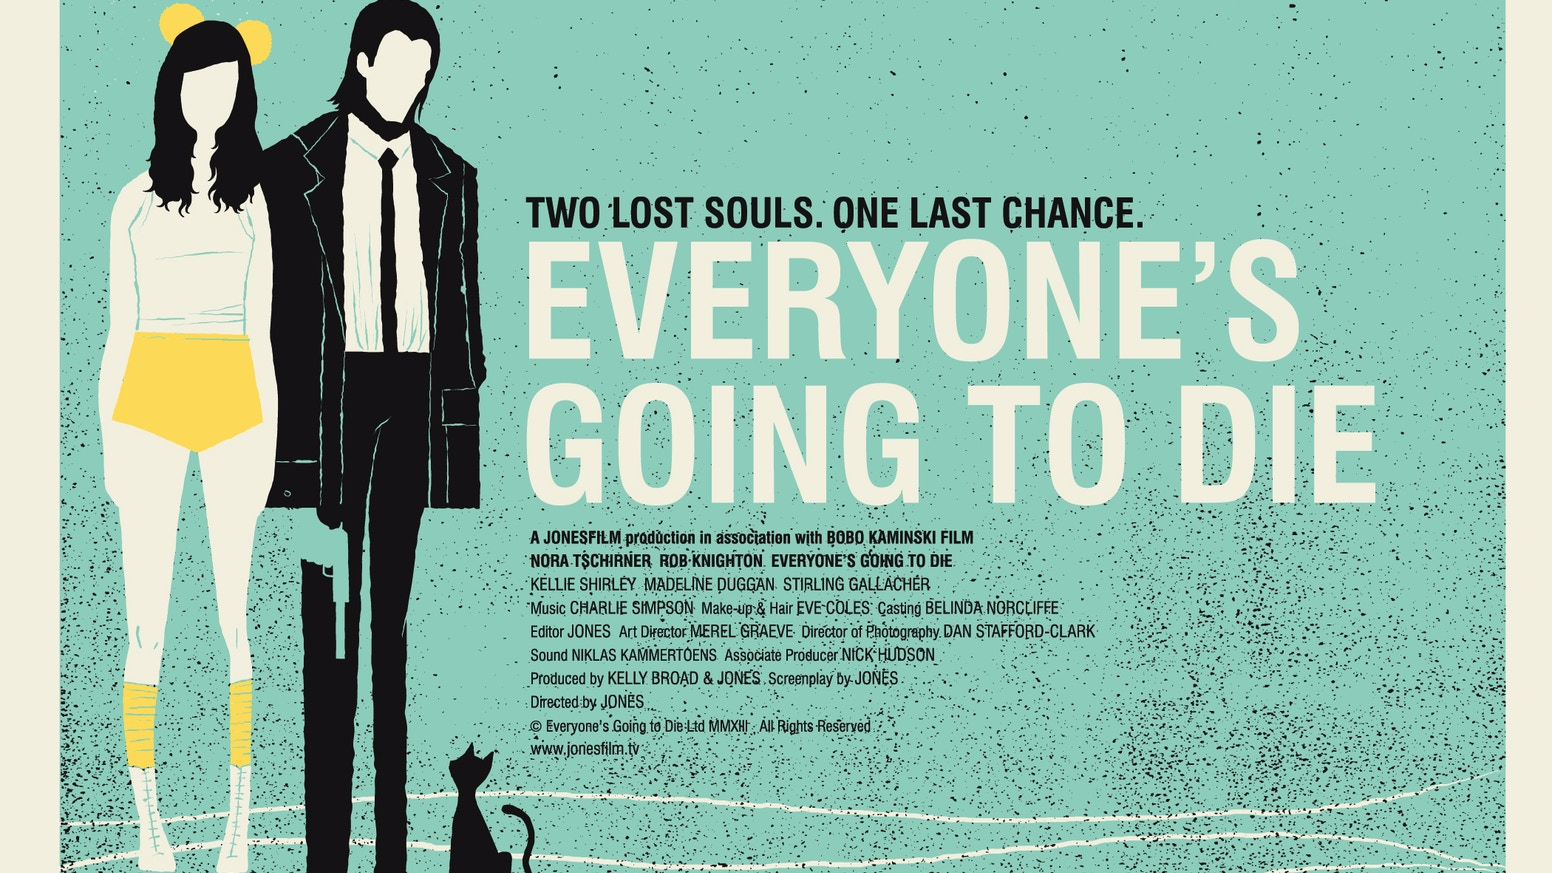 Everyone's Going To Die: Be A Movie Distributor  by Jones